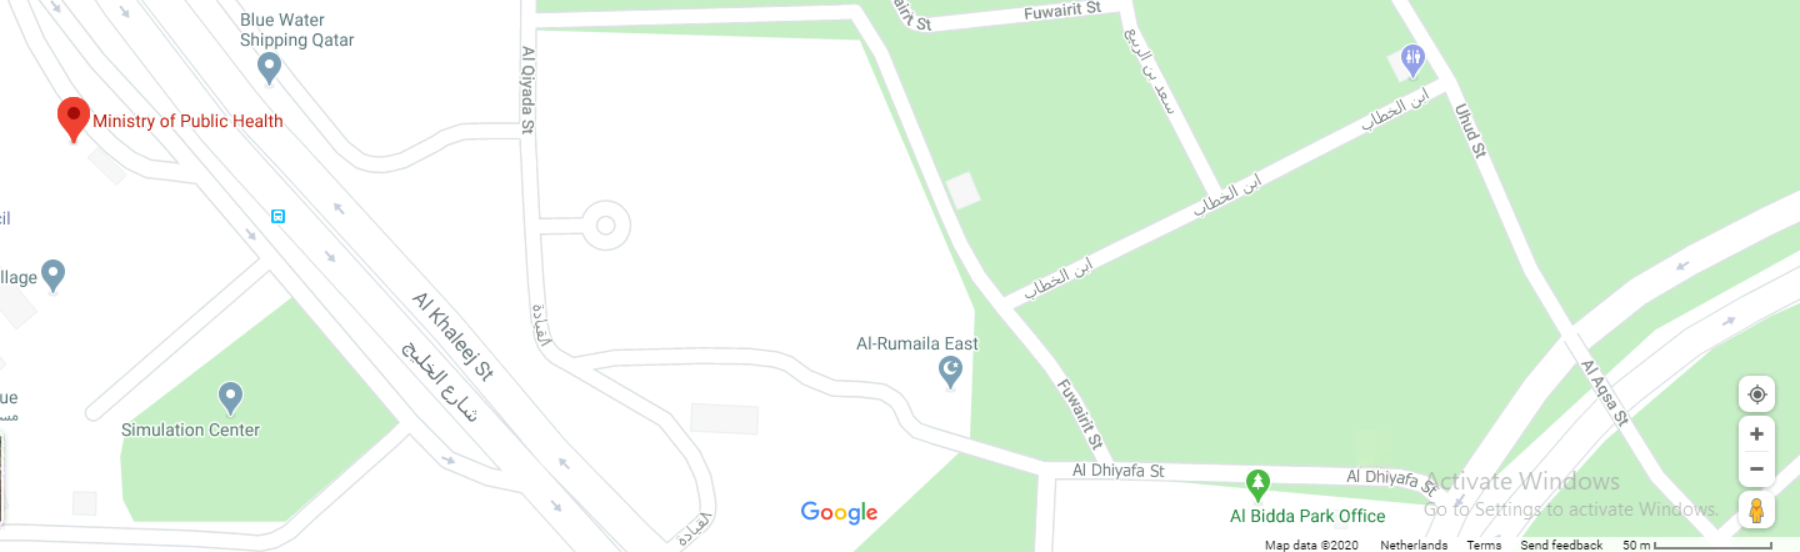 Qatar Ministry of Public Health, Headquarters location on Google Map